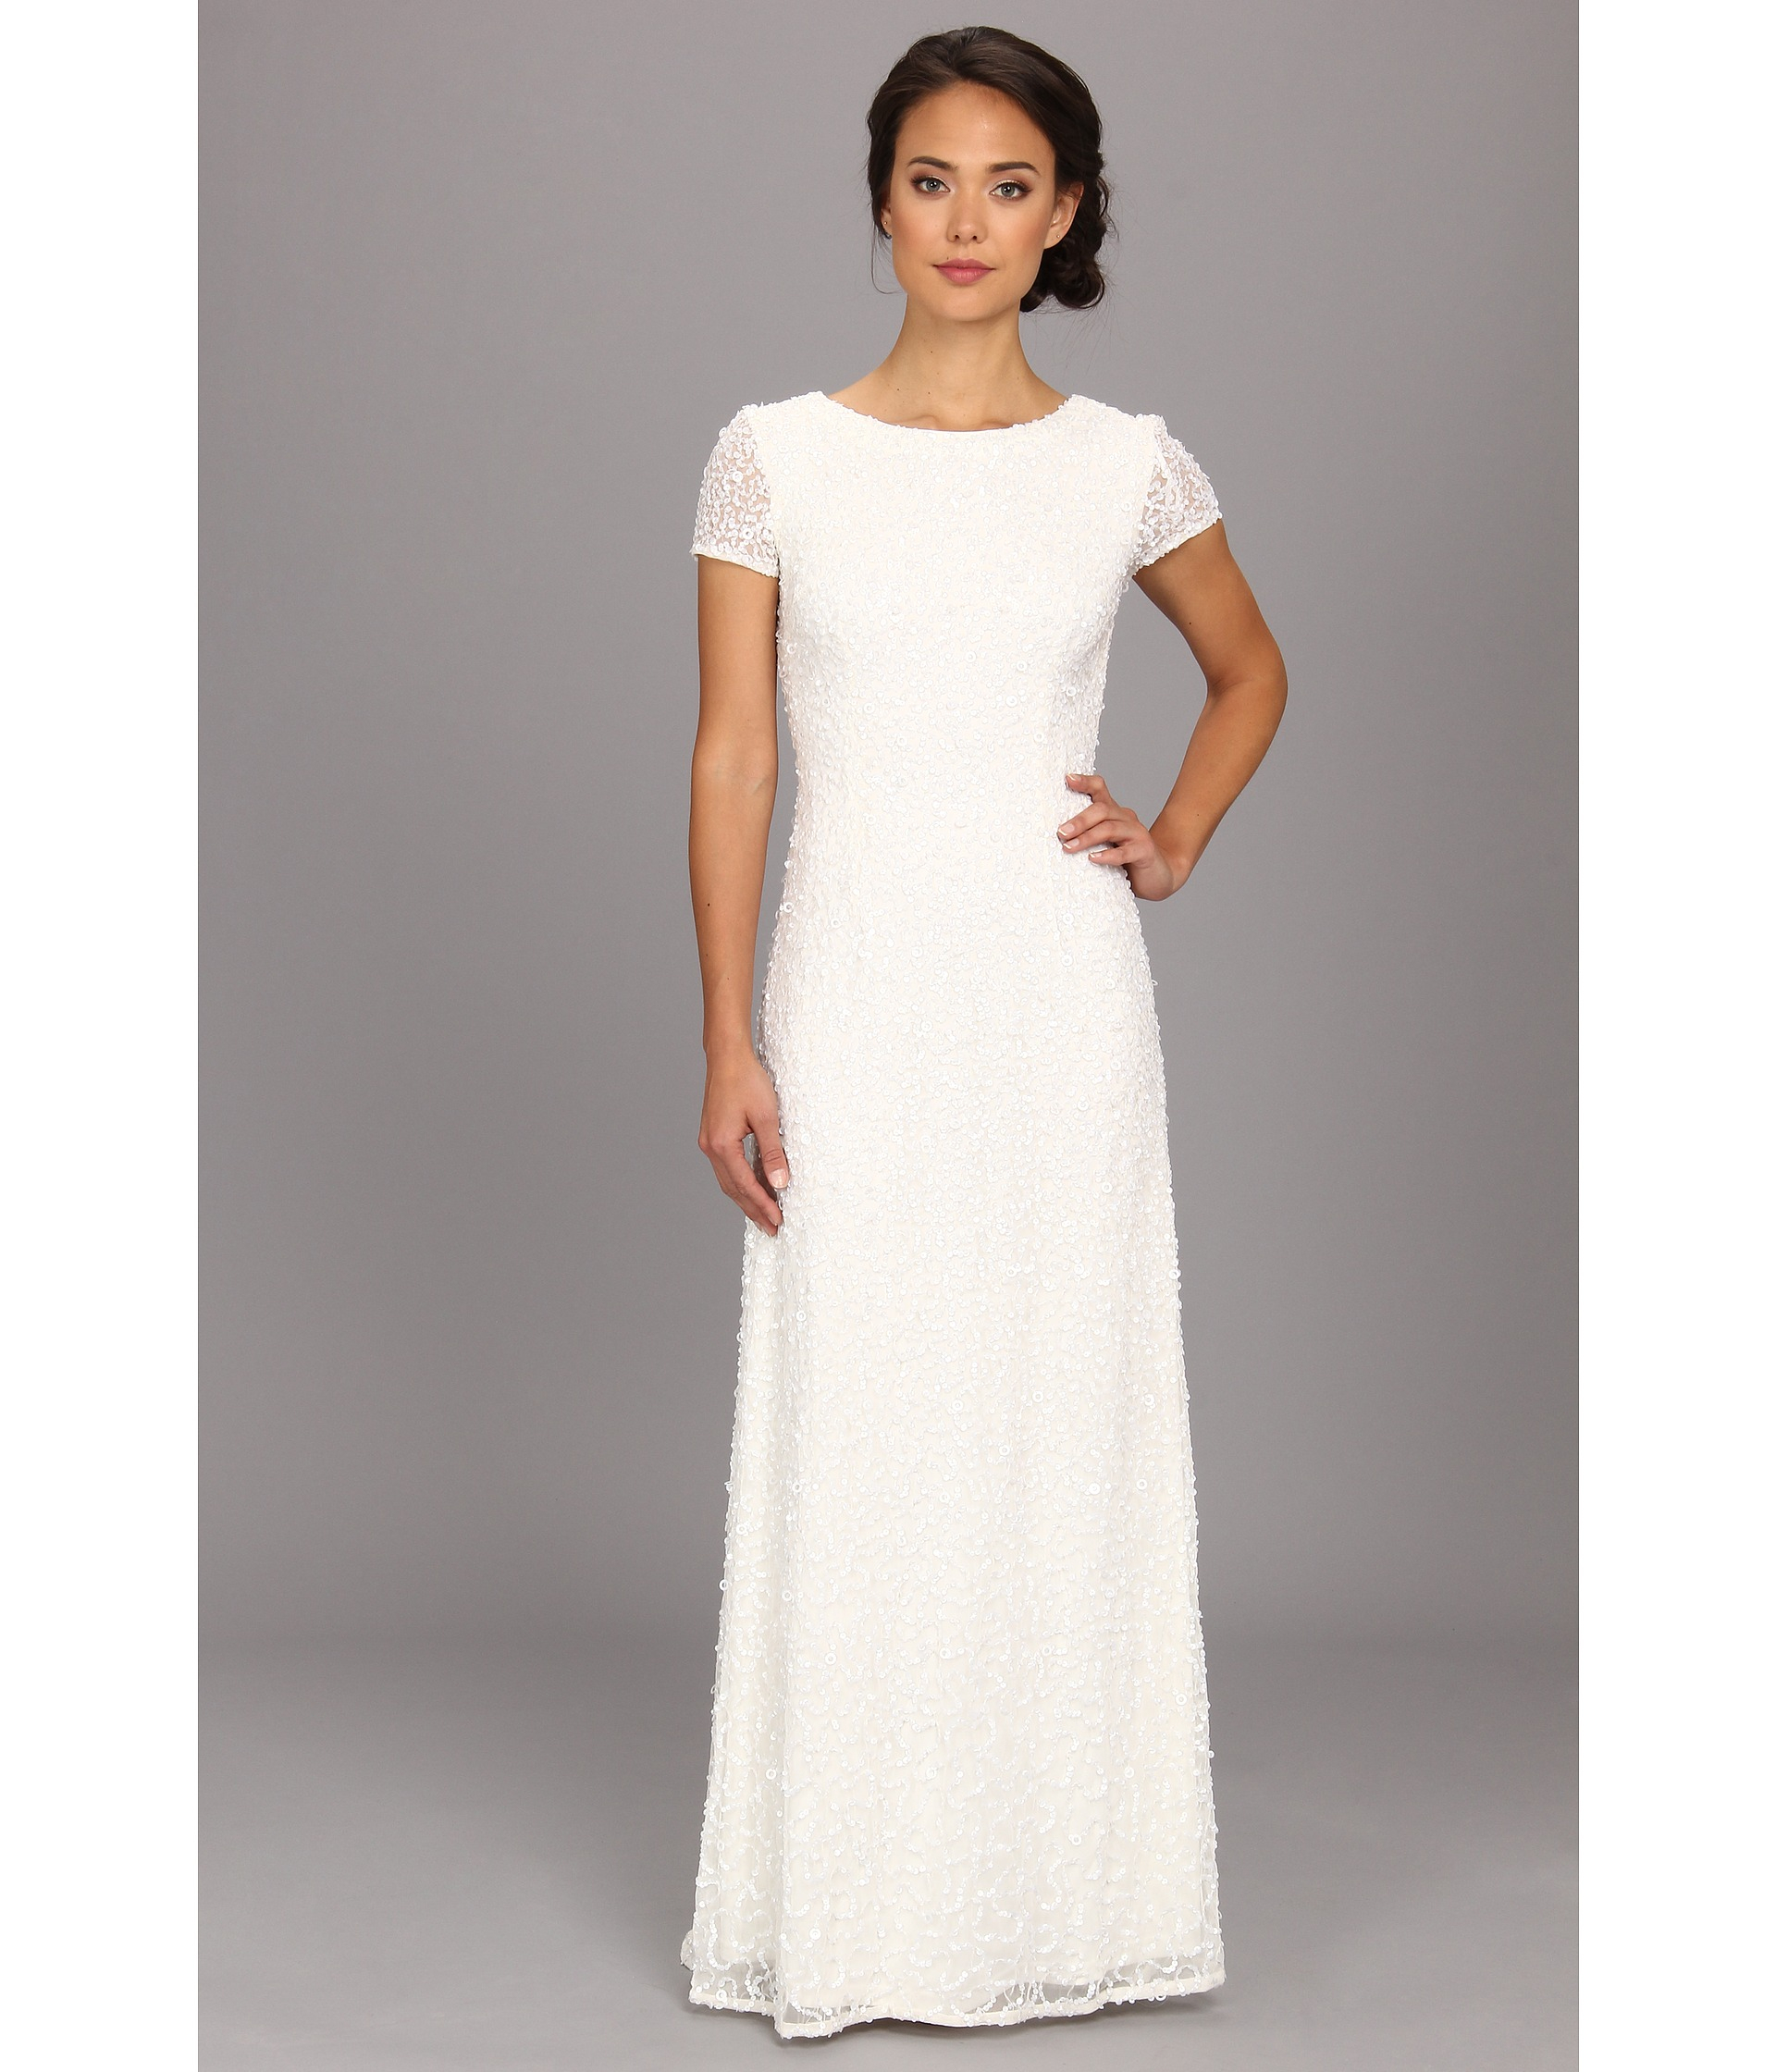 Lyst Adrianna Papell Cap Sleeve Scoop Back Beaded Down Dress In White